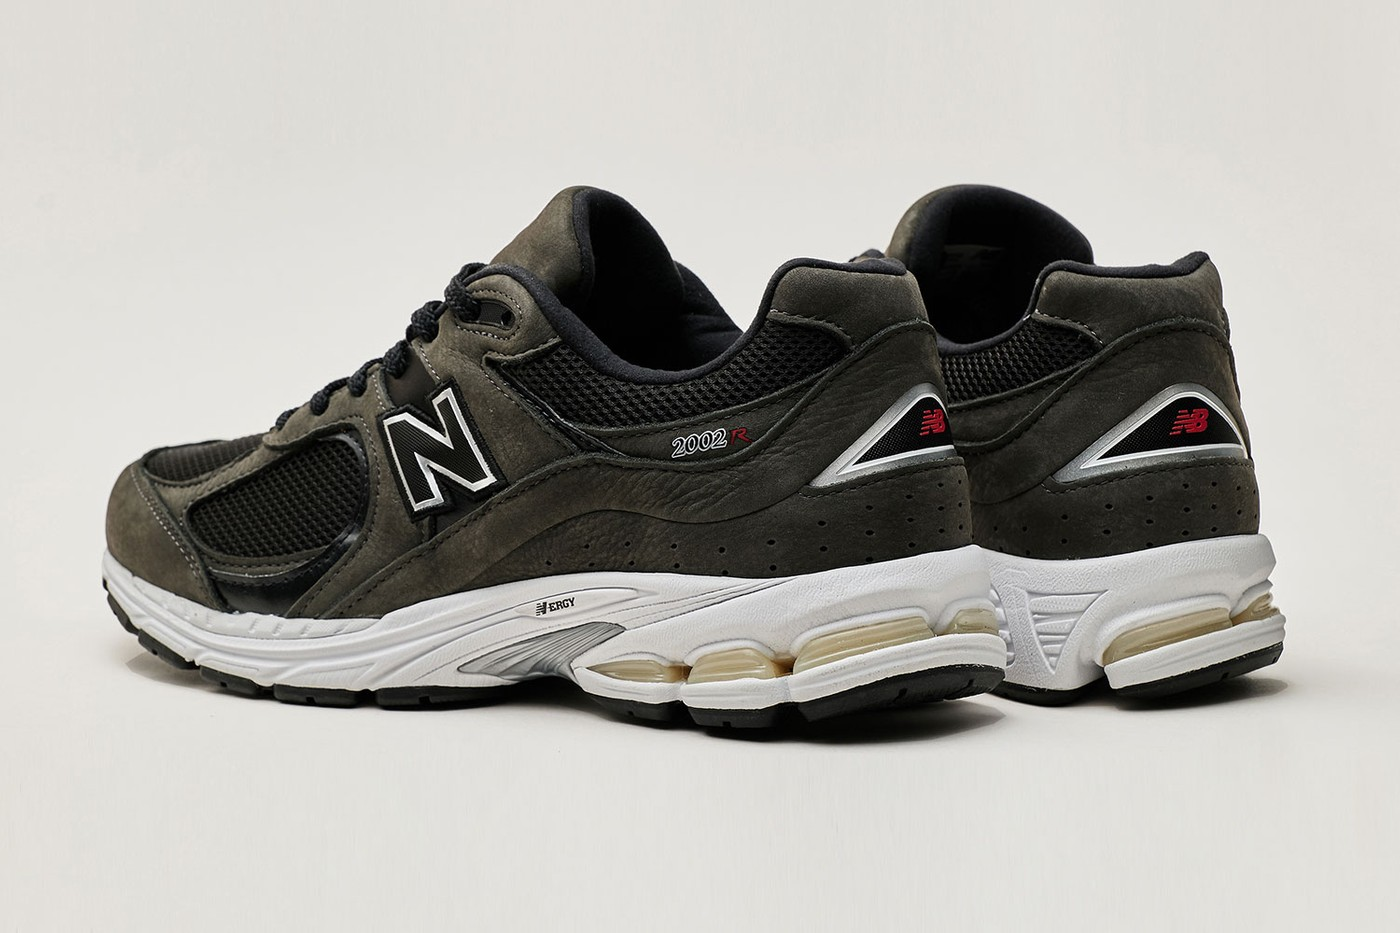 New-Balance-2002R-Grey-And-Black-Rear-View